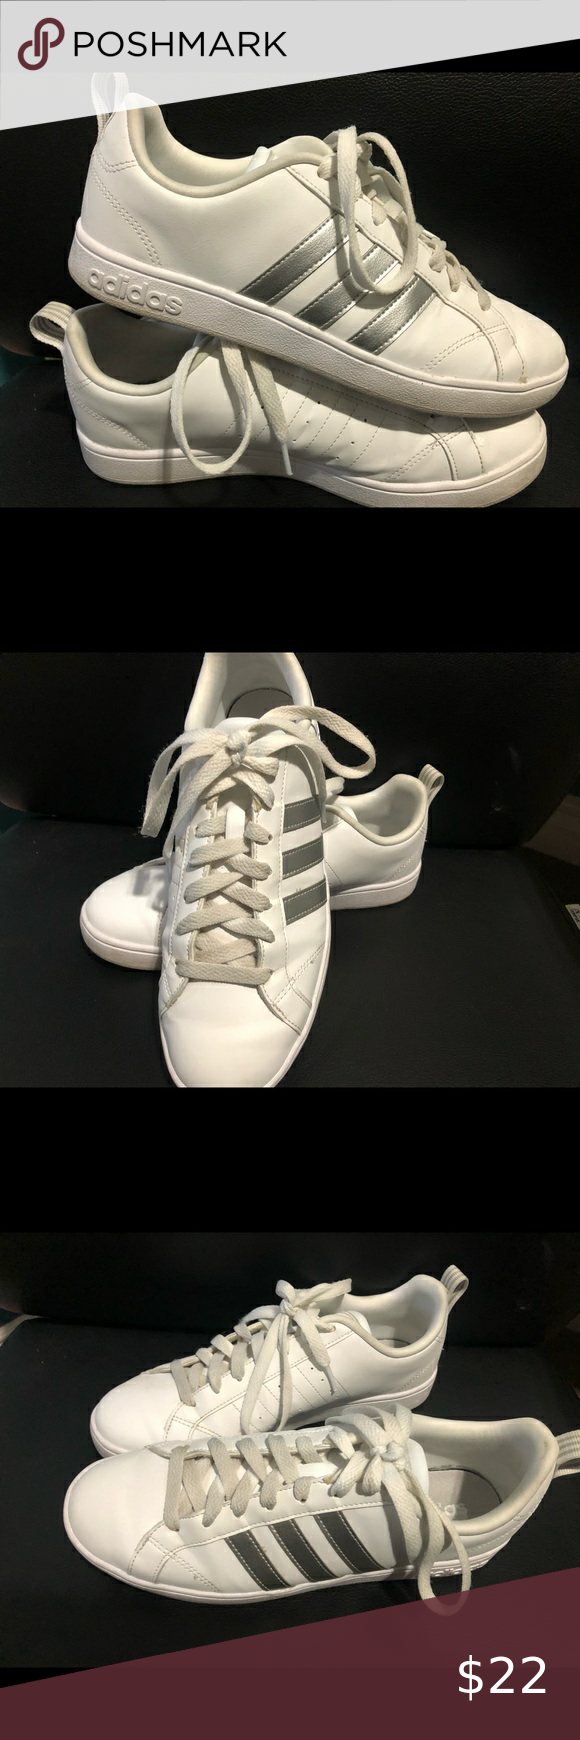 EUC Women's Adidas – Barely Worn! You can't beat sneakers that are as perfec…